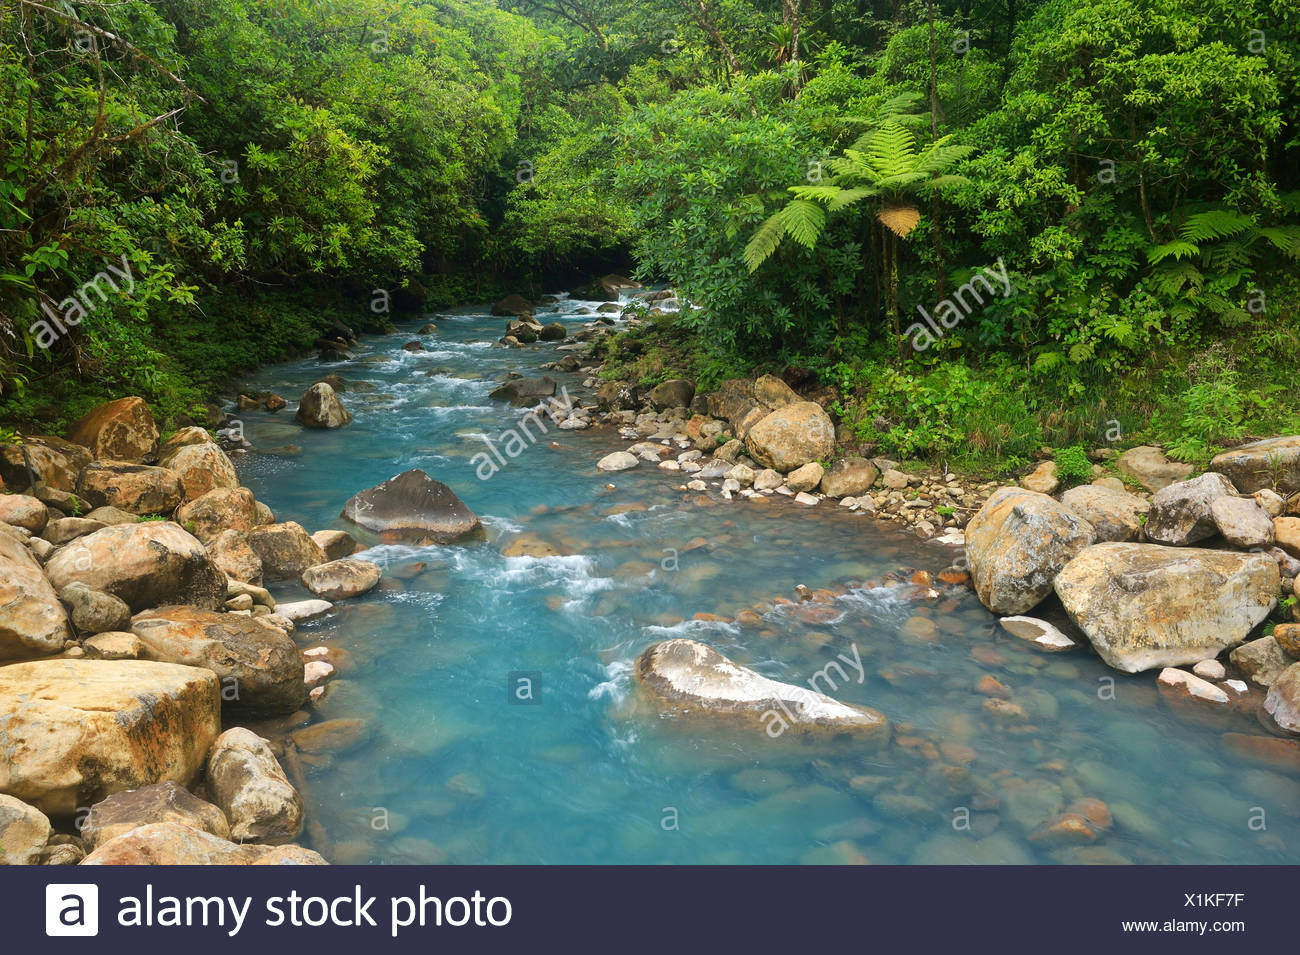 River Rio Celeste, coloured light blue by minerals, Tenorio Volcano National Park, Costa Rica, Central America - Stock Image